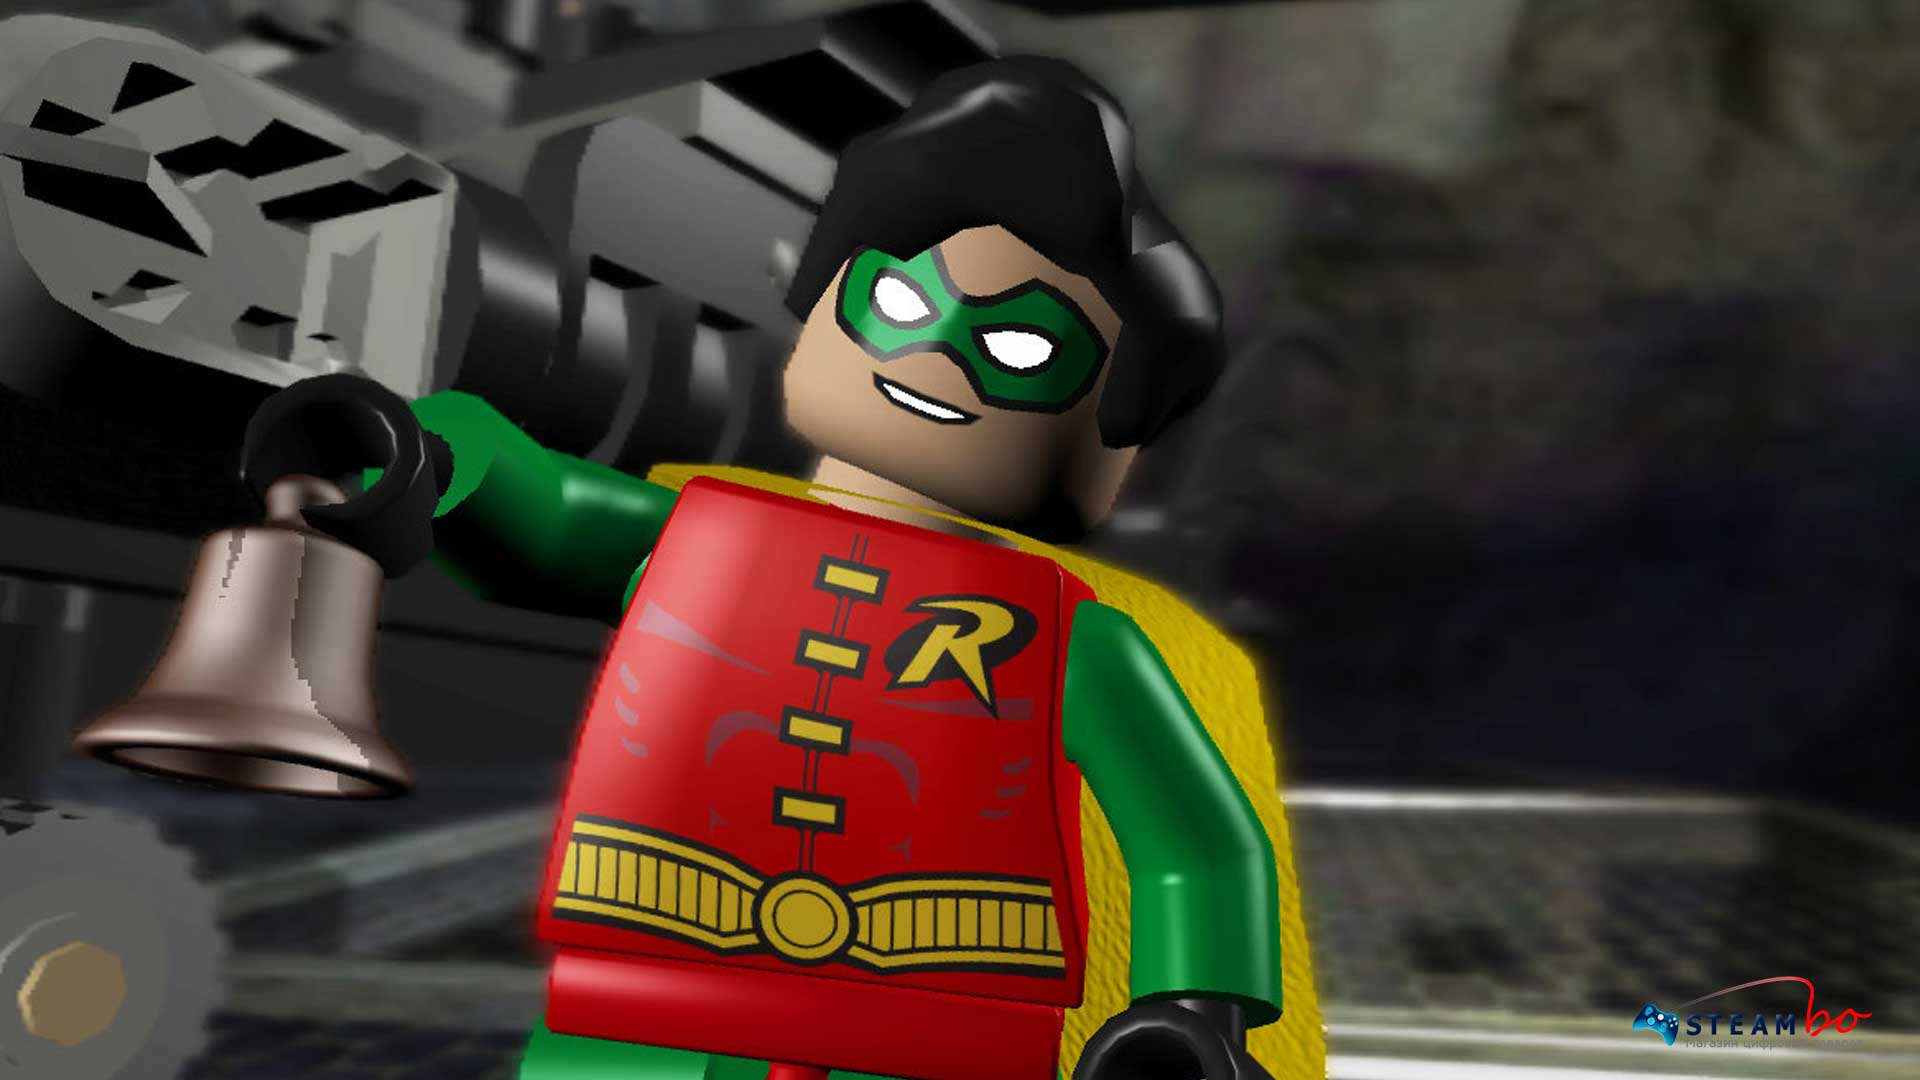 LEGO Batman Region Free (Steam Gift / Key)